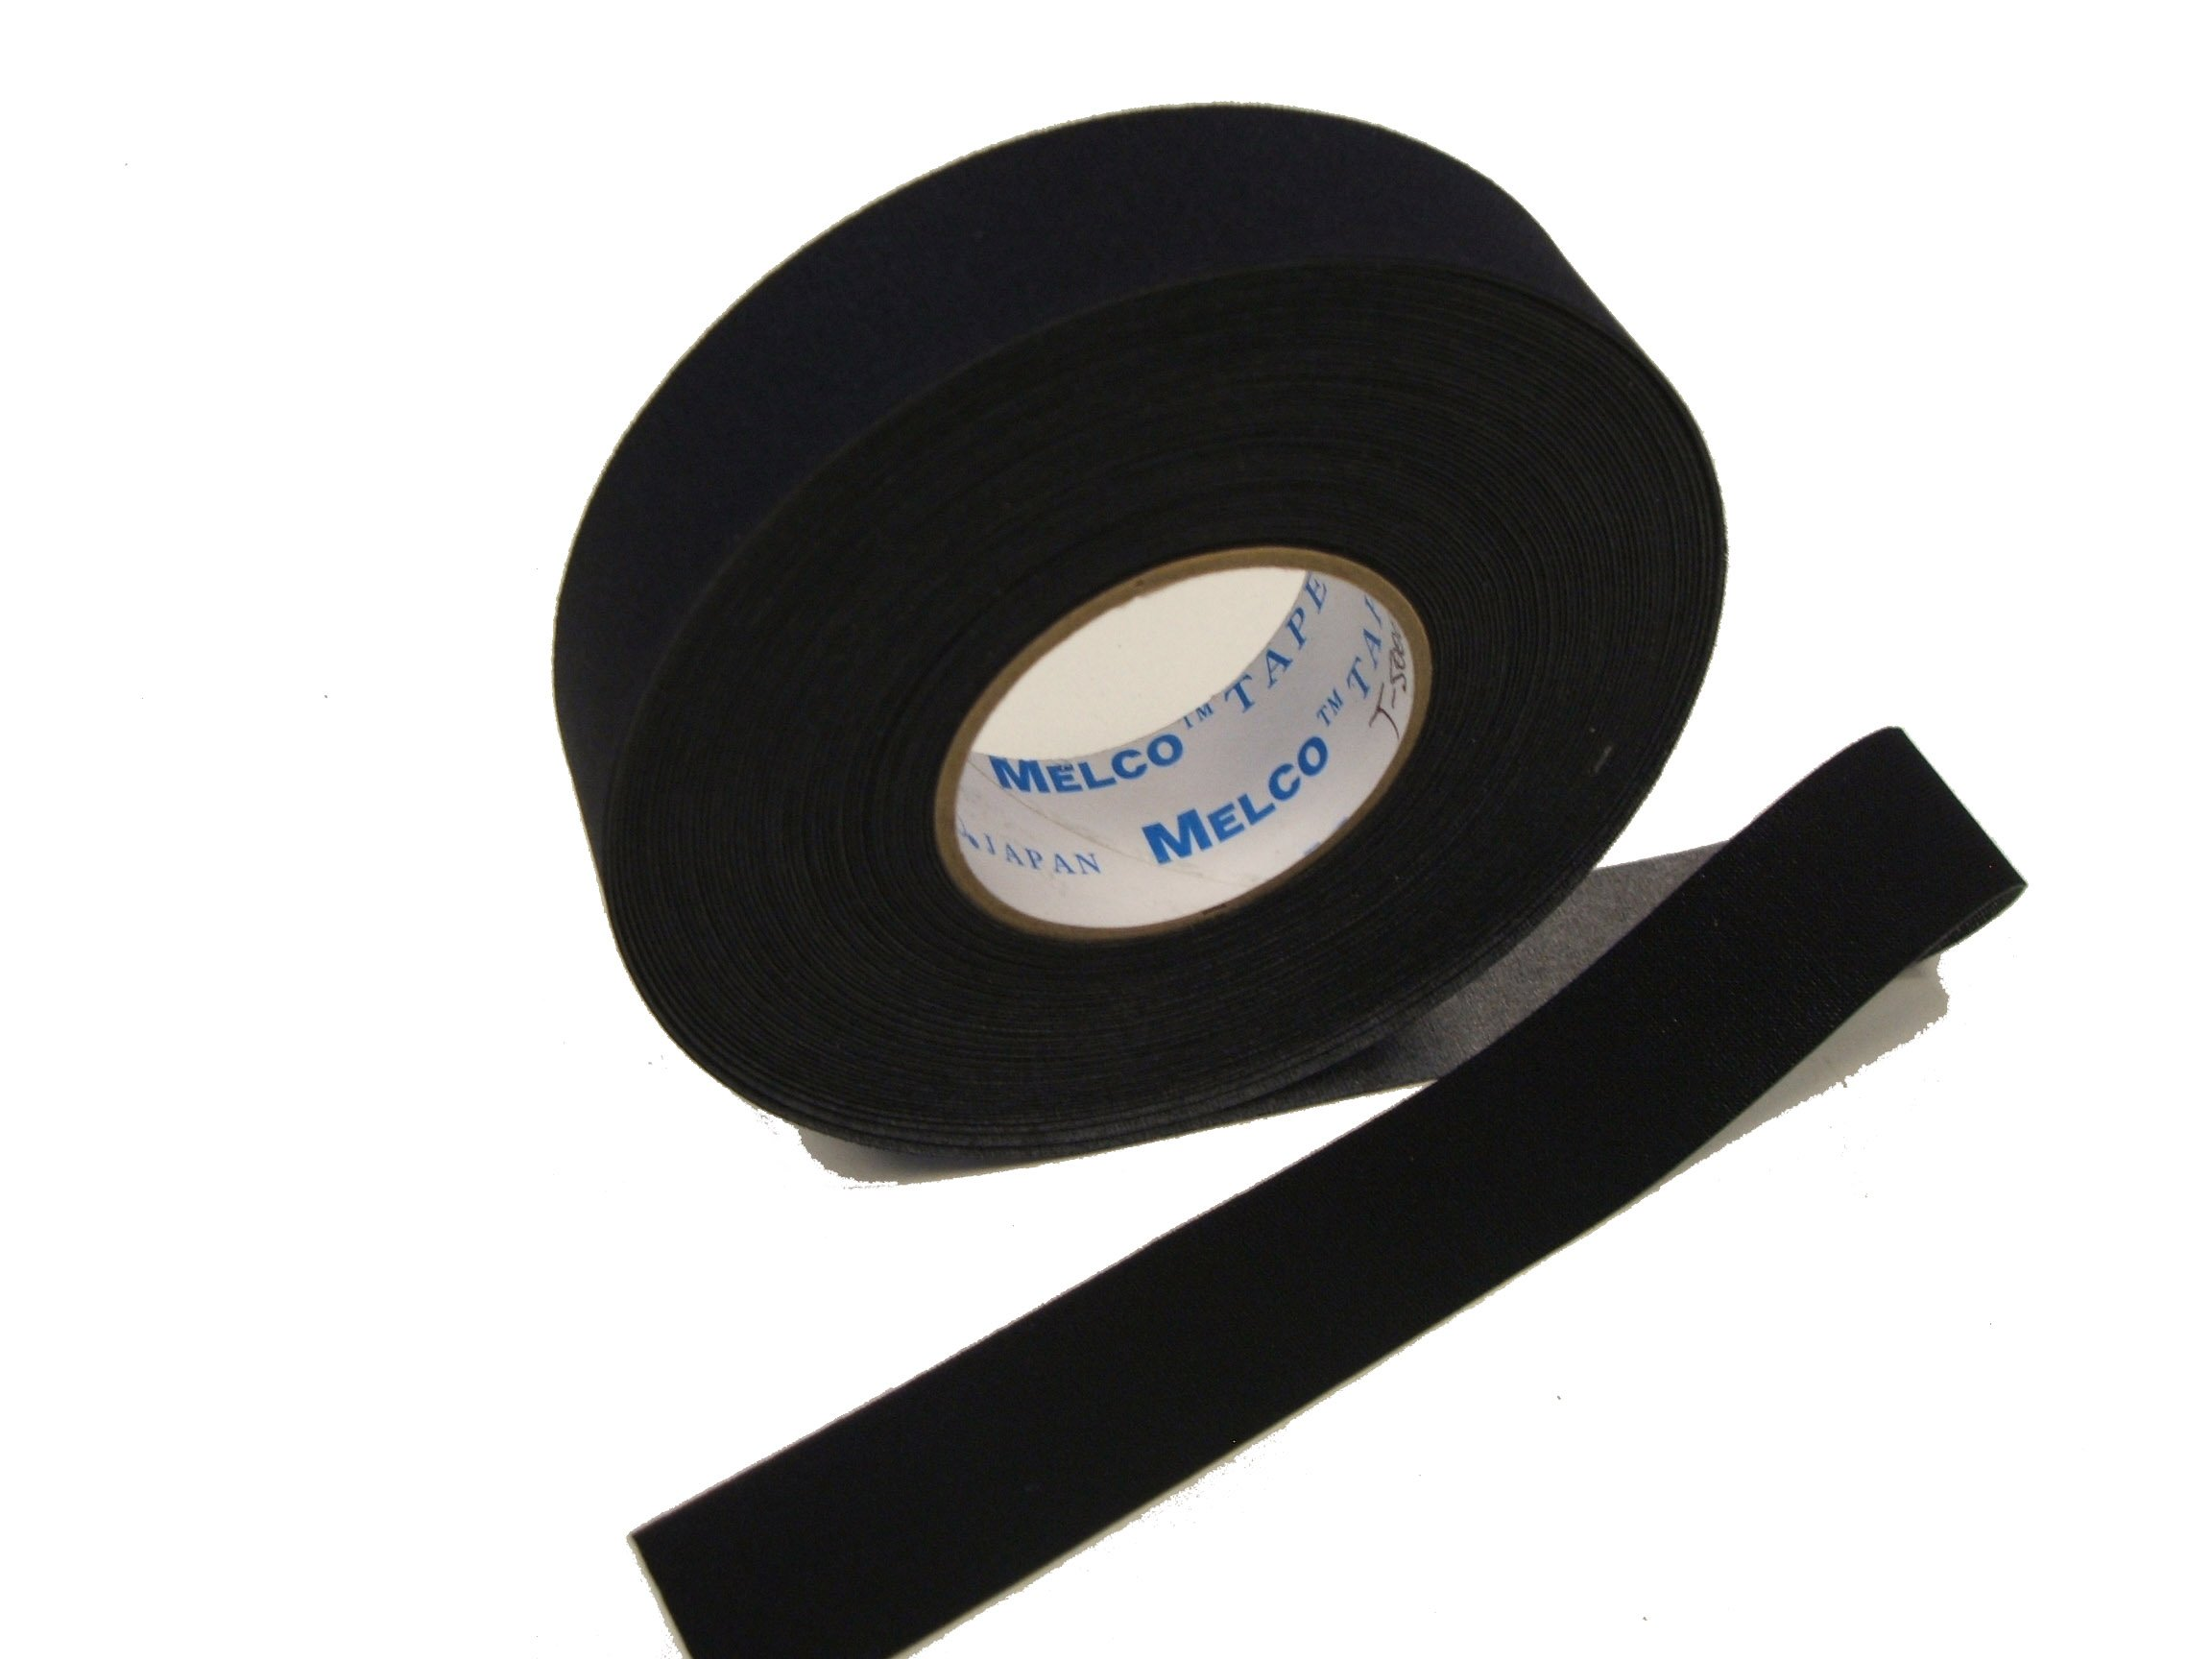 Cinta sellado neopreno Tape Melco T-5000 5